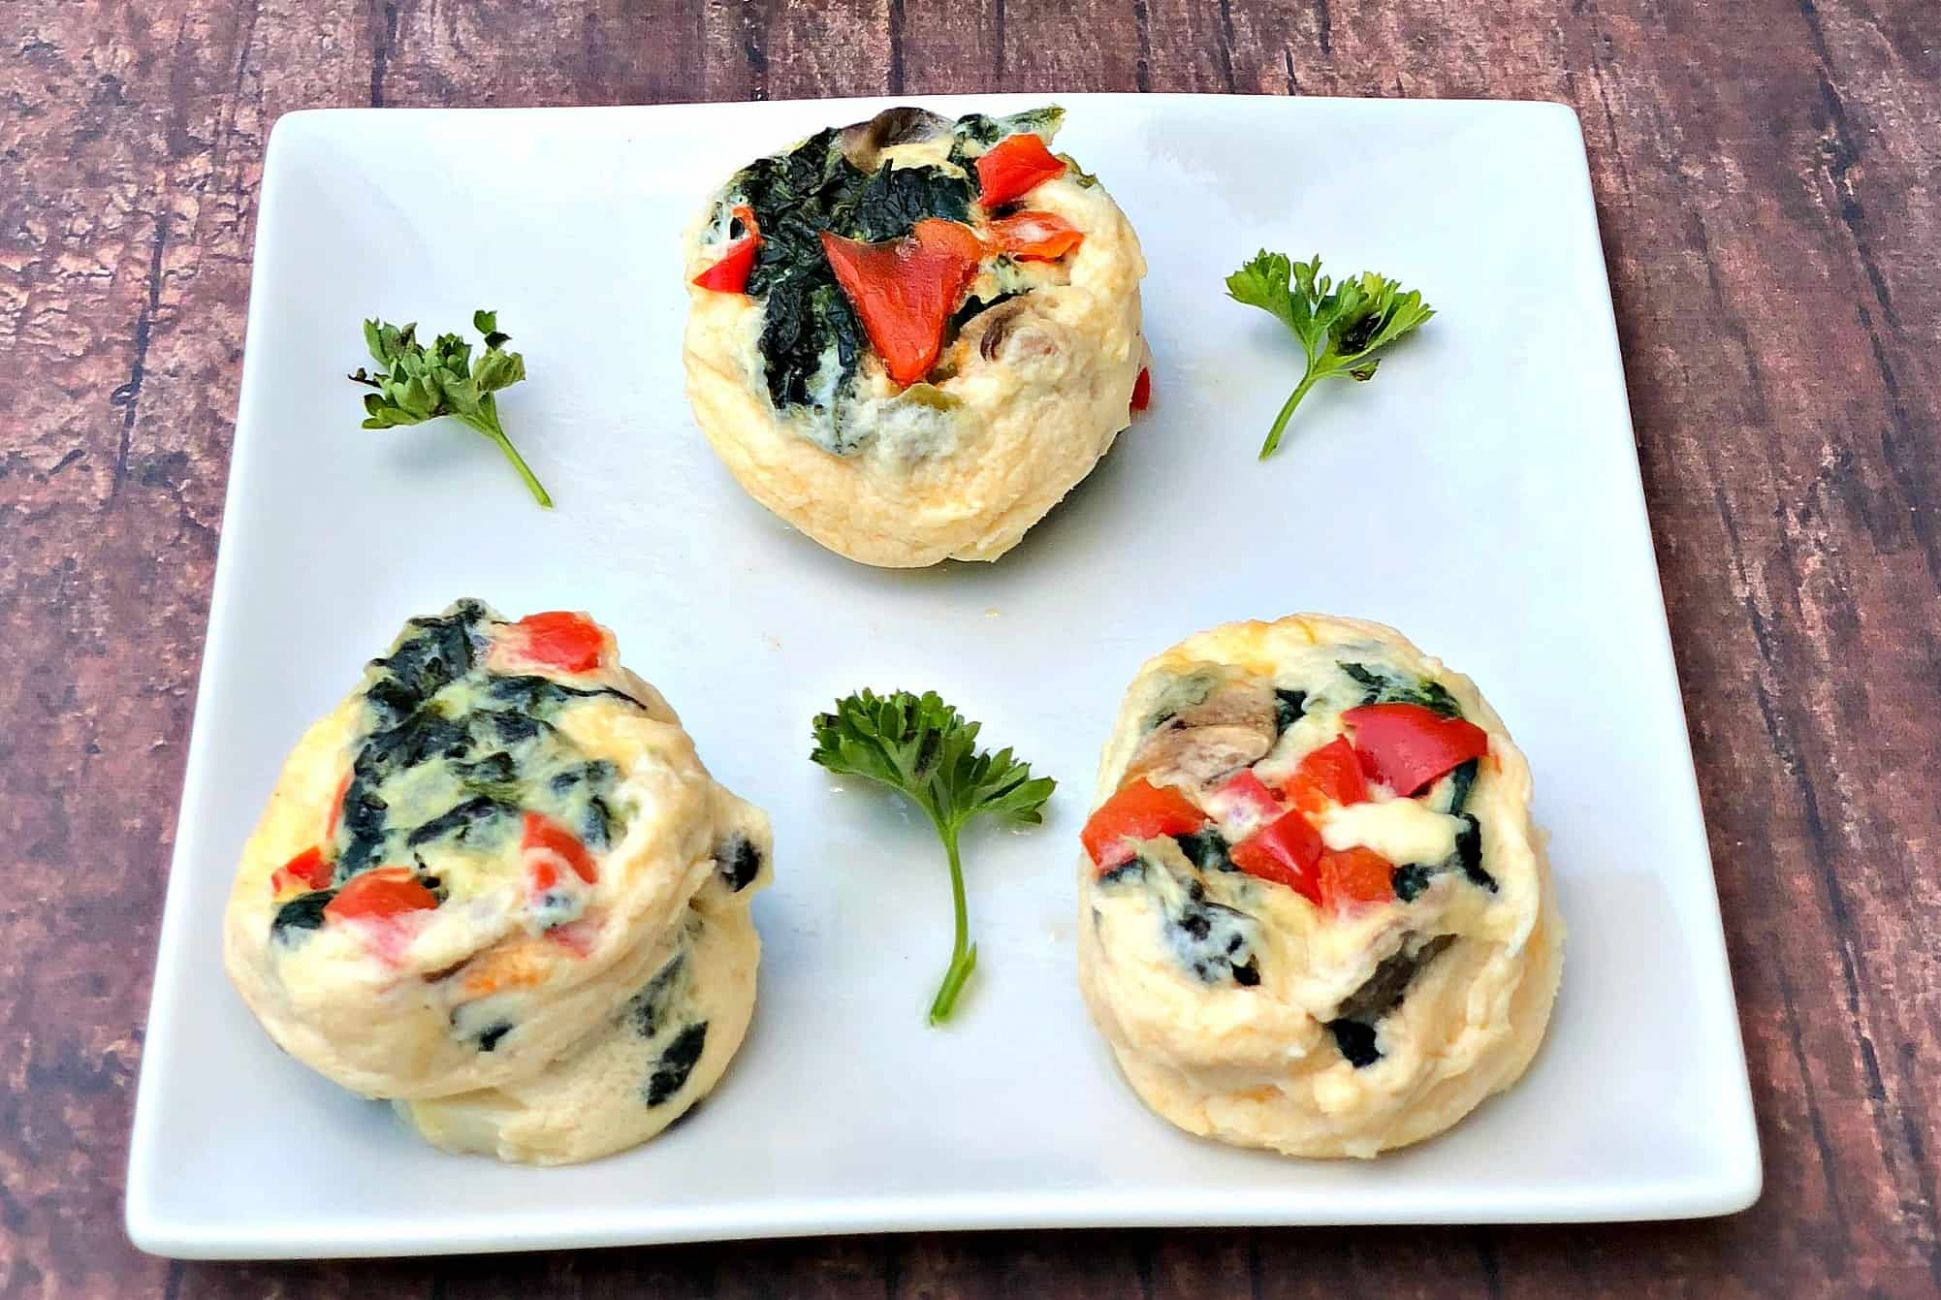 Keto Low-Carb Egg White Omelet Vegetable Bites - Recipes Egg White Bites